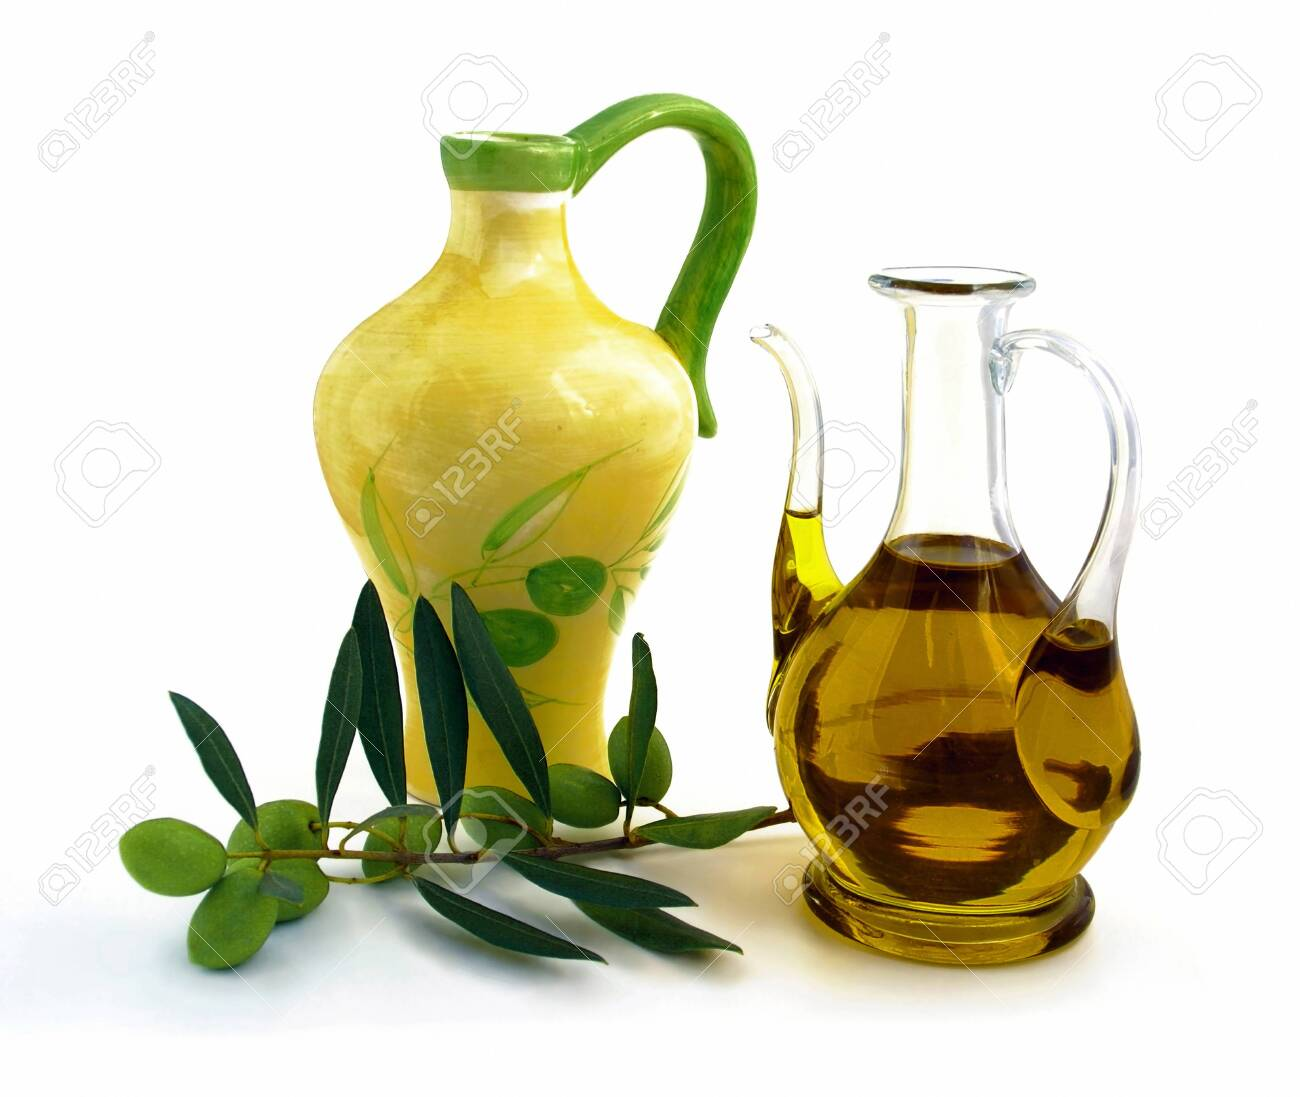 Carafe and small jug containing olive oil. White fand. - 128415887